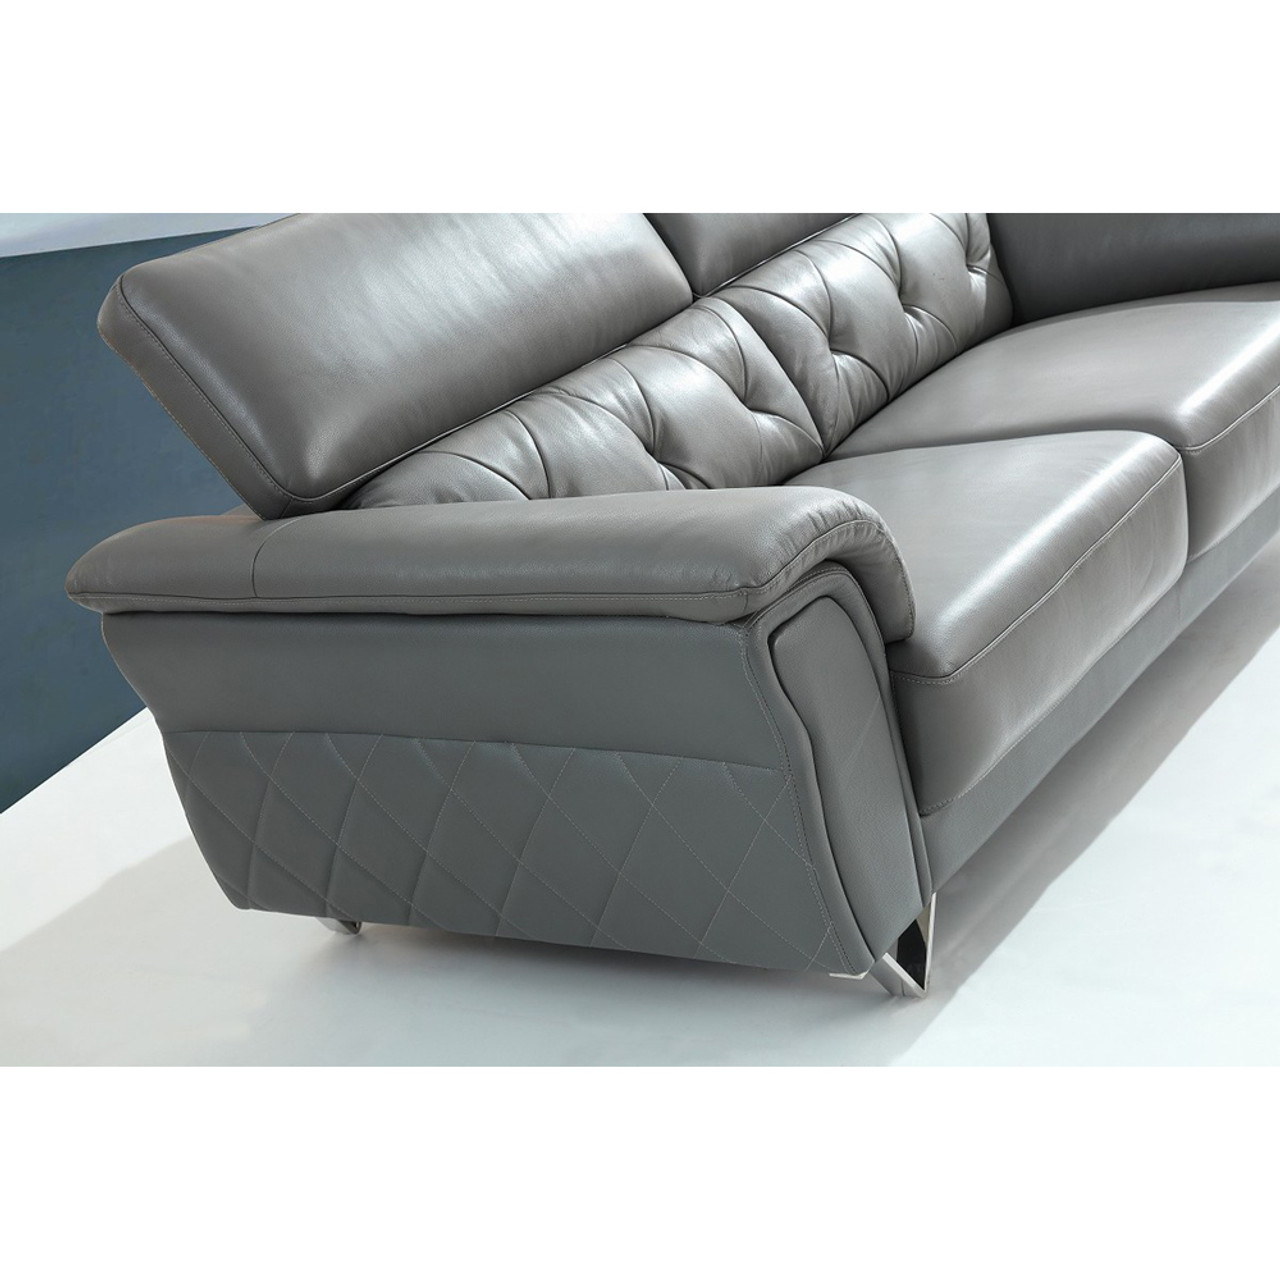 Remarkable Divani Casa Perry Modern Grey Leather Sofa Set Pabps2019 Chair Design Images Pabps2019Com